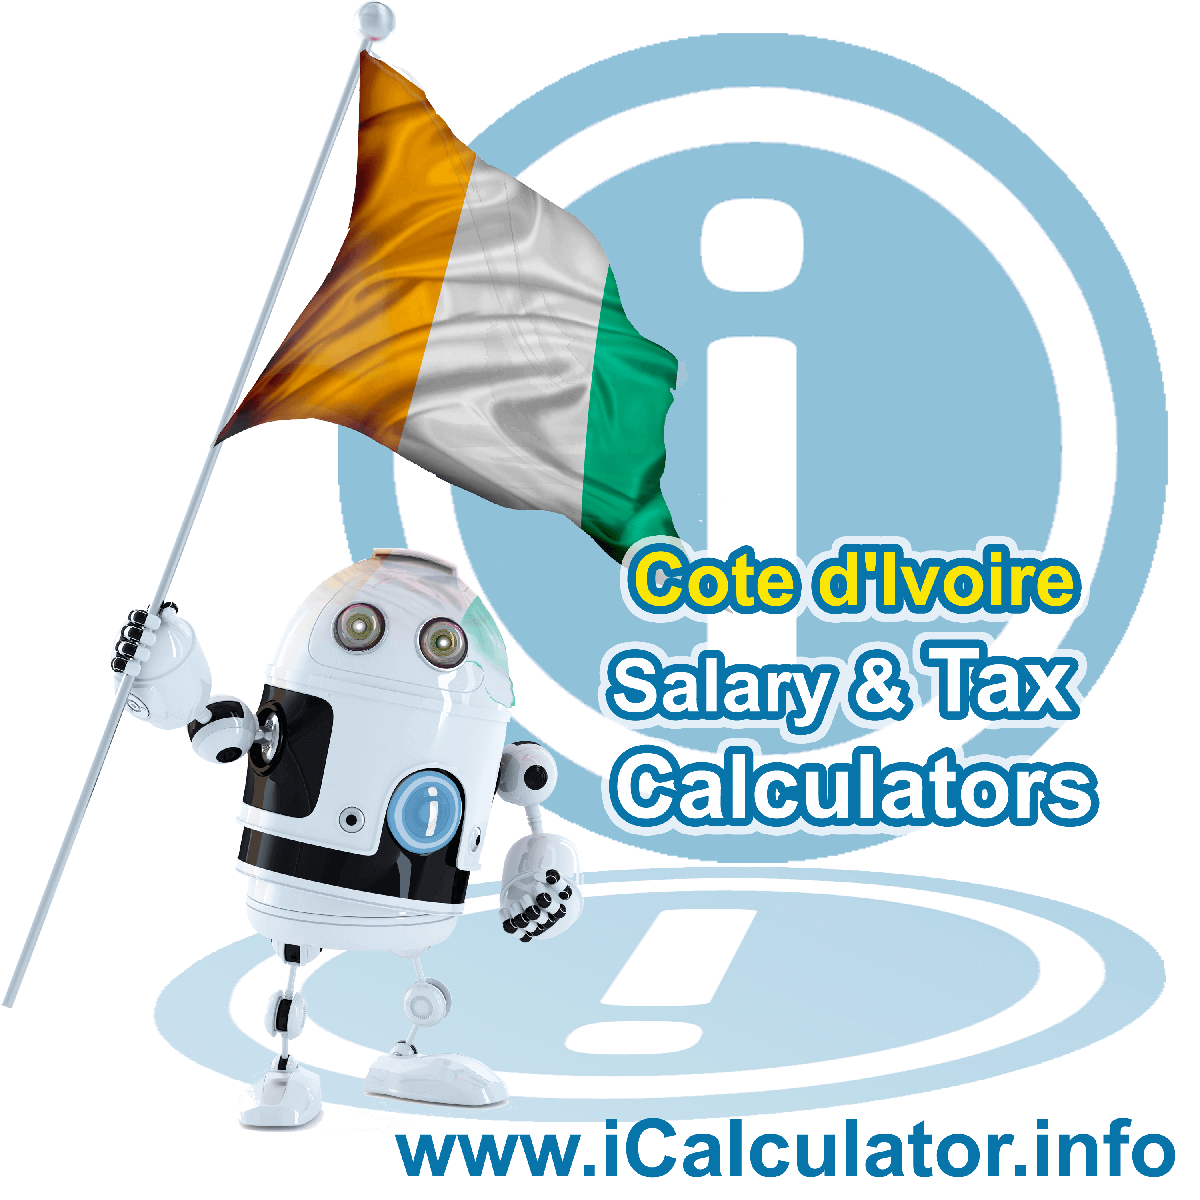 Cote Divoire Wage Calculator. This image shows the Cote Divoire flag and information relating to the tax formula for the Cote Divoire Tax Calculator